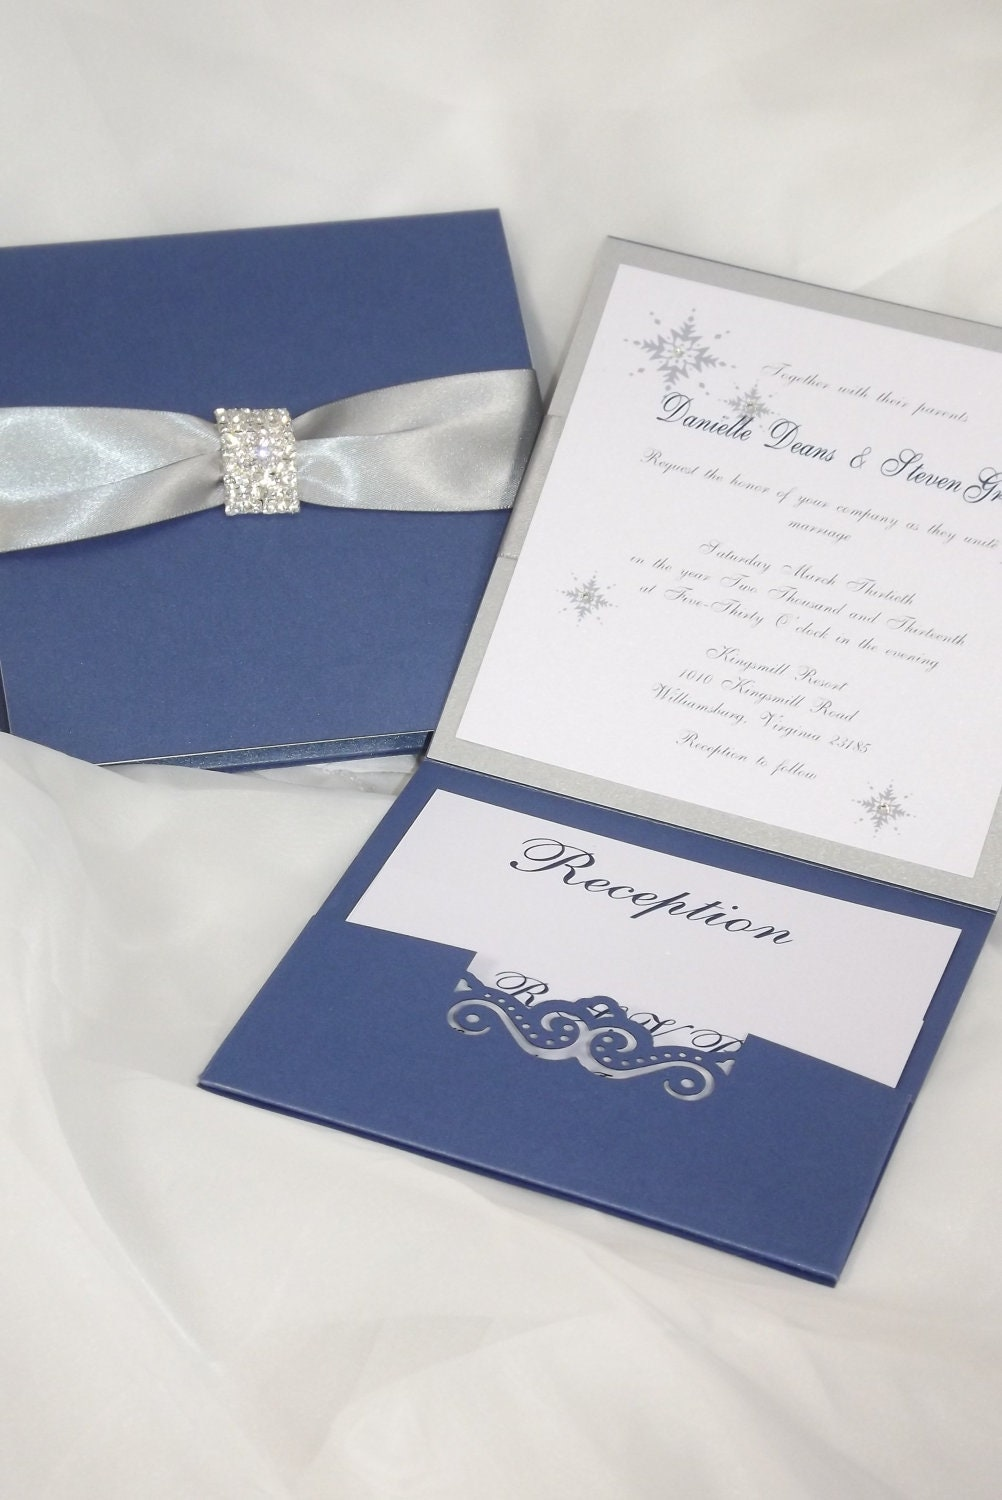 Elegant Weding Invitations With Crystals 01 - Elegant Weding Invitations With Crystals